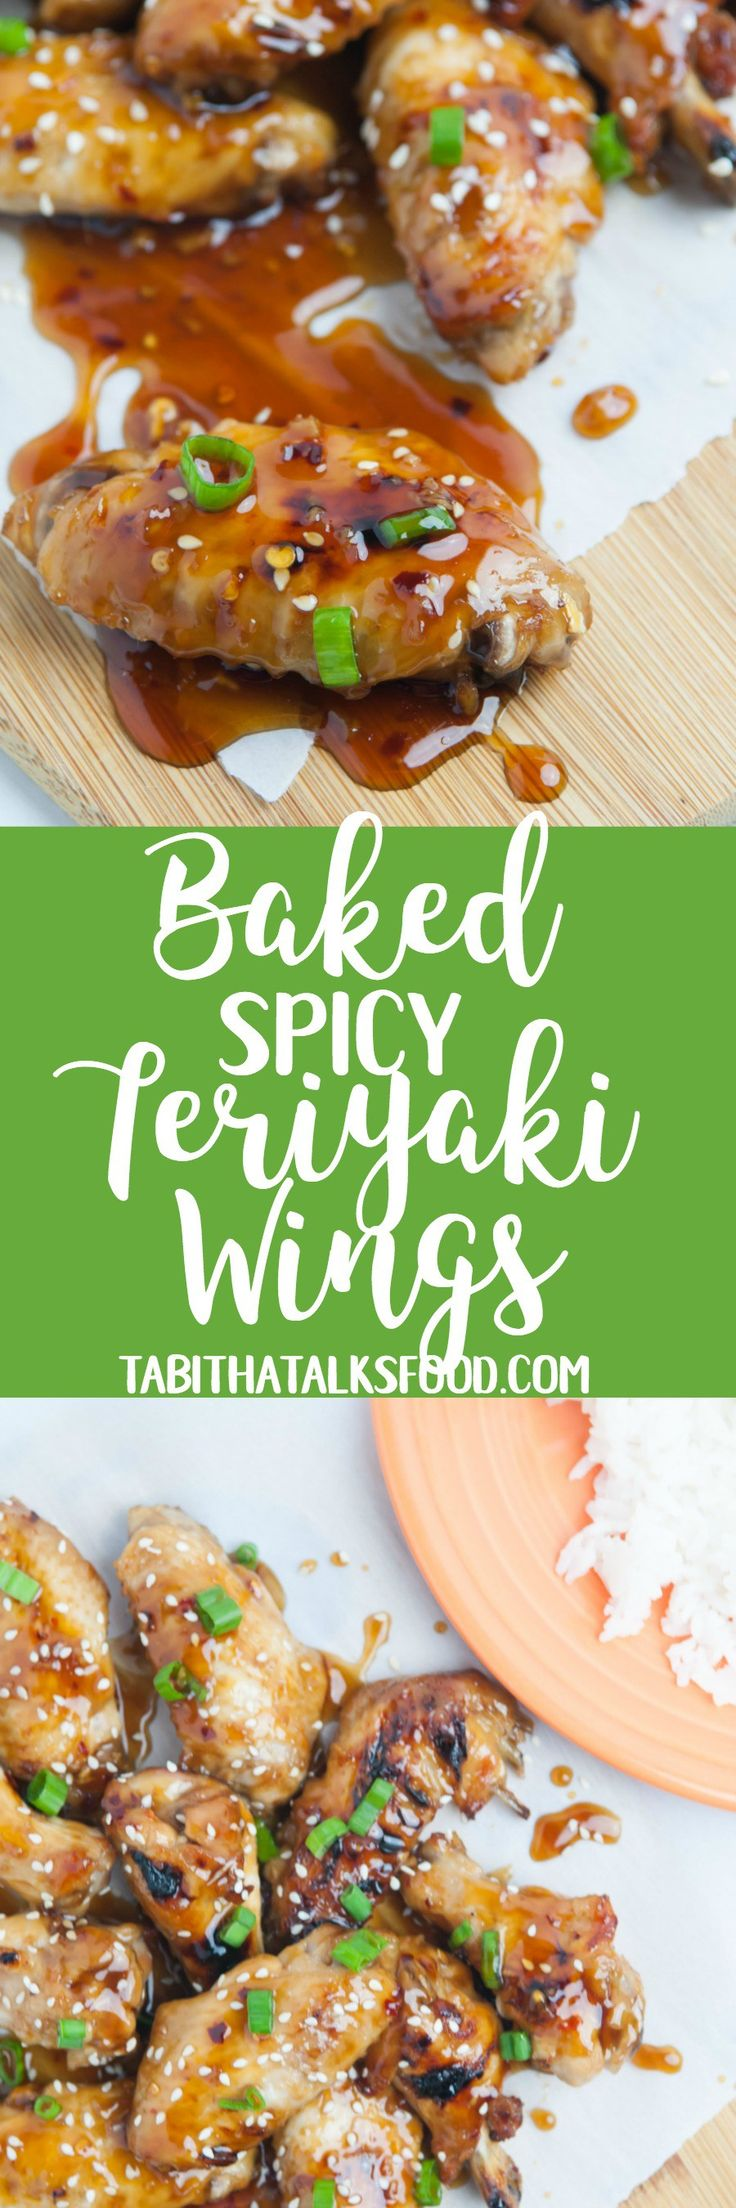 These spicy teriyaki chicken wings are made with a homemade teriyaki sweet and spicy sauce. They are baked in the oven and make an easy no fuss dinner!